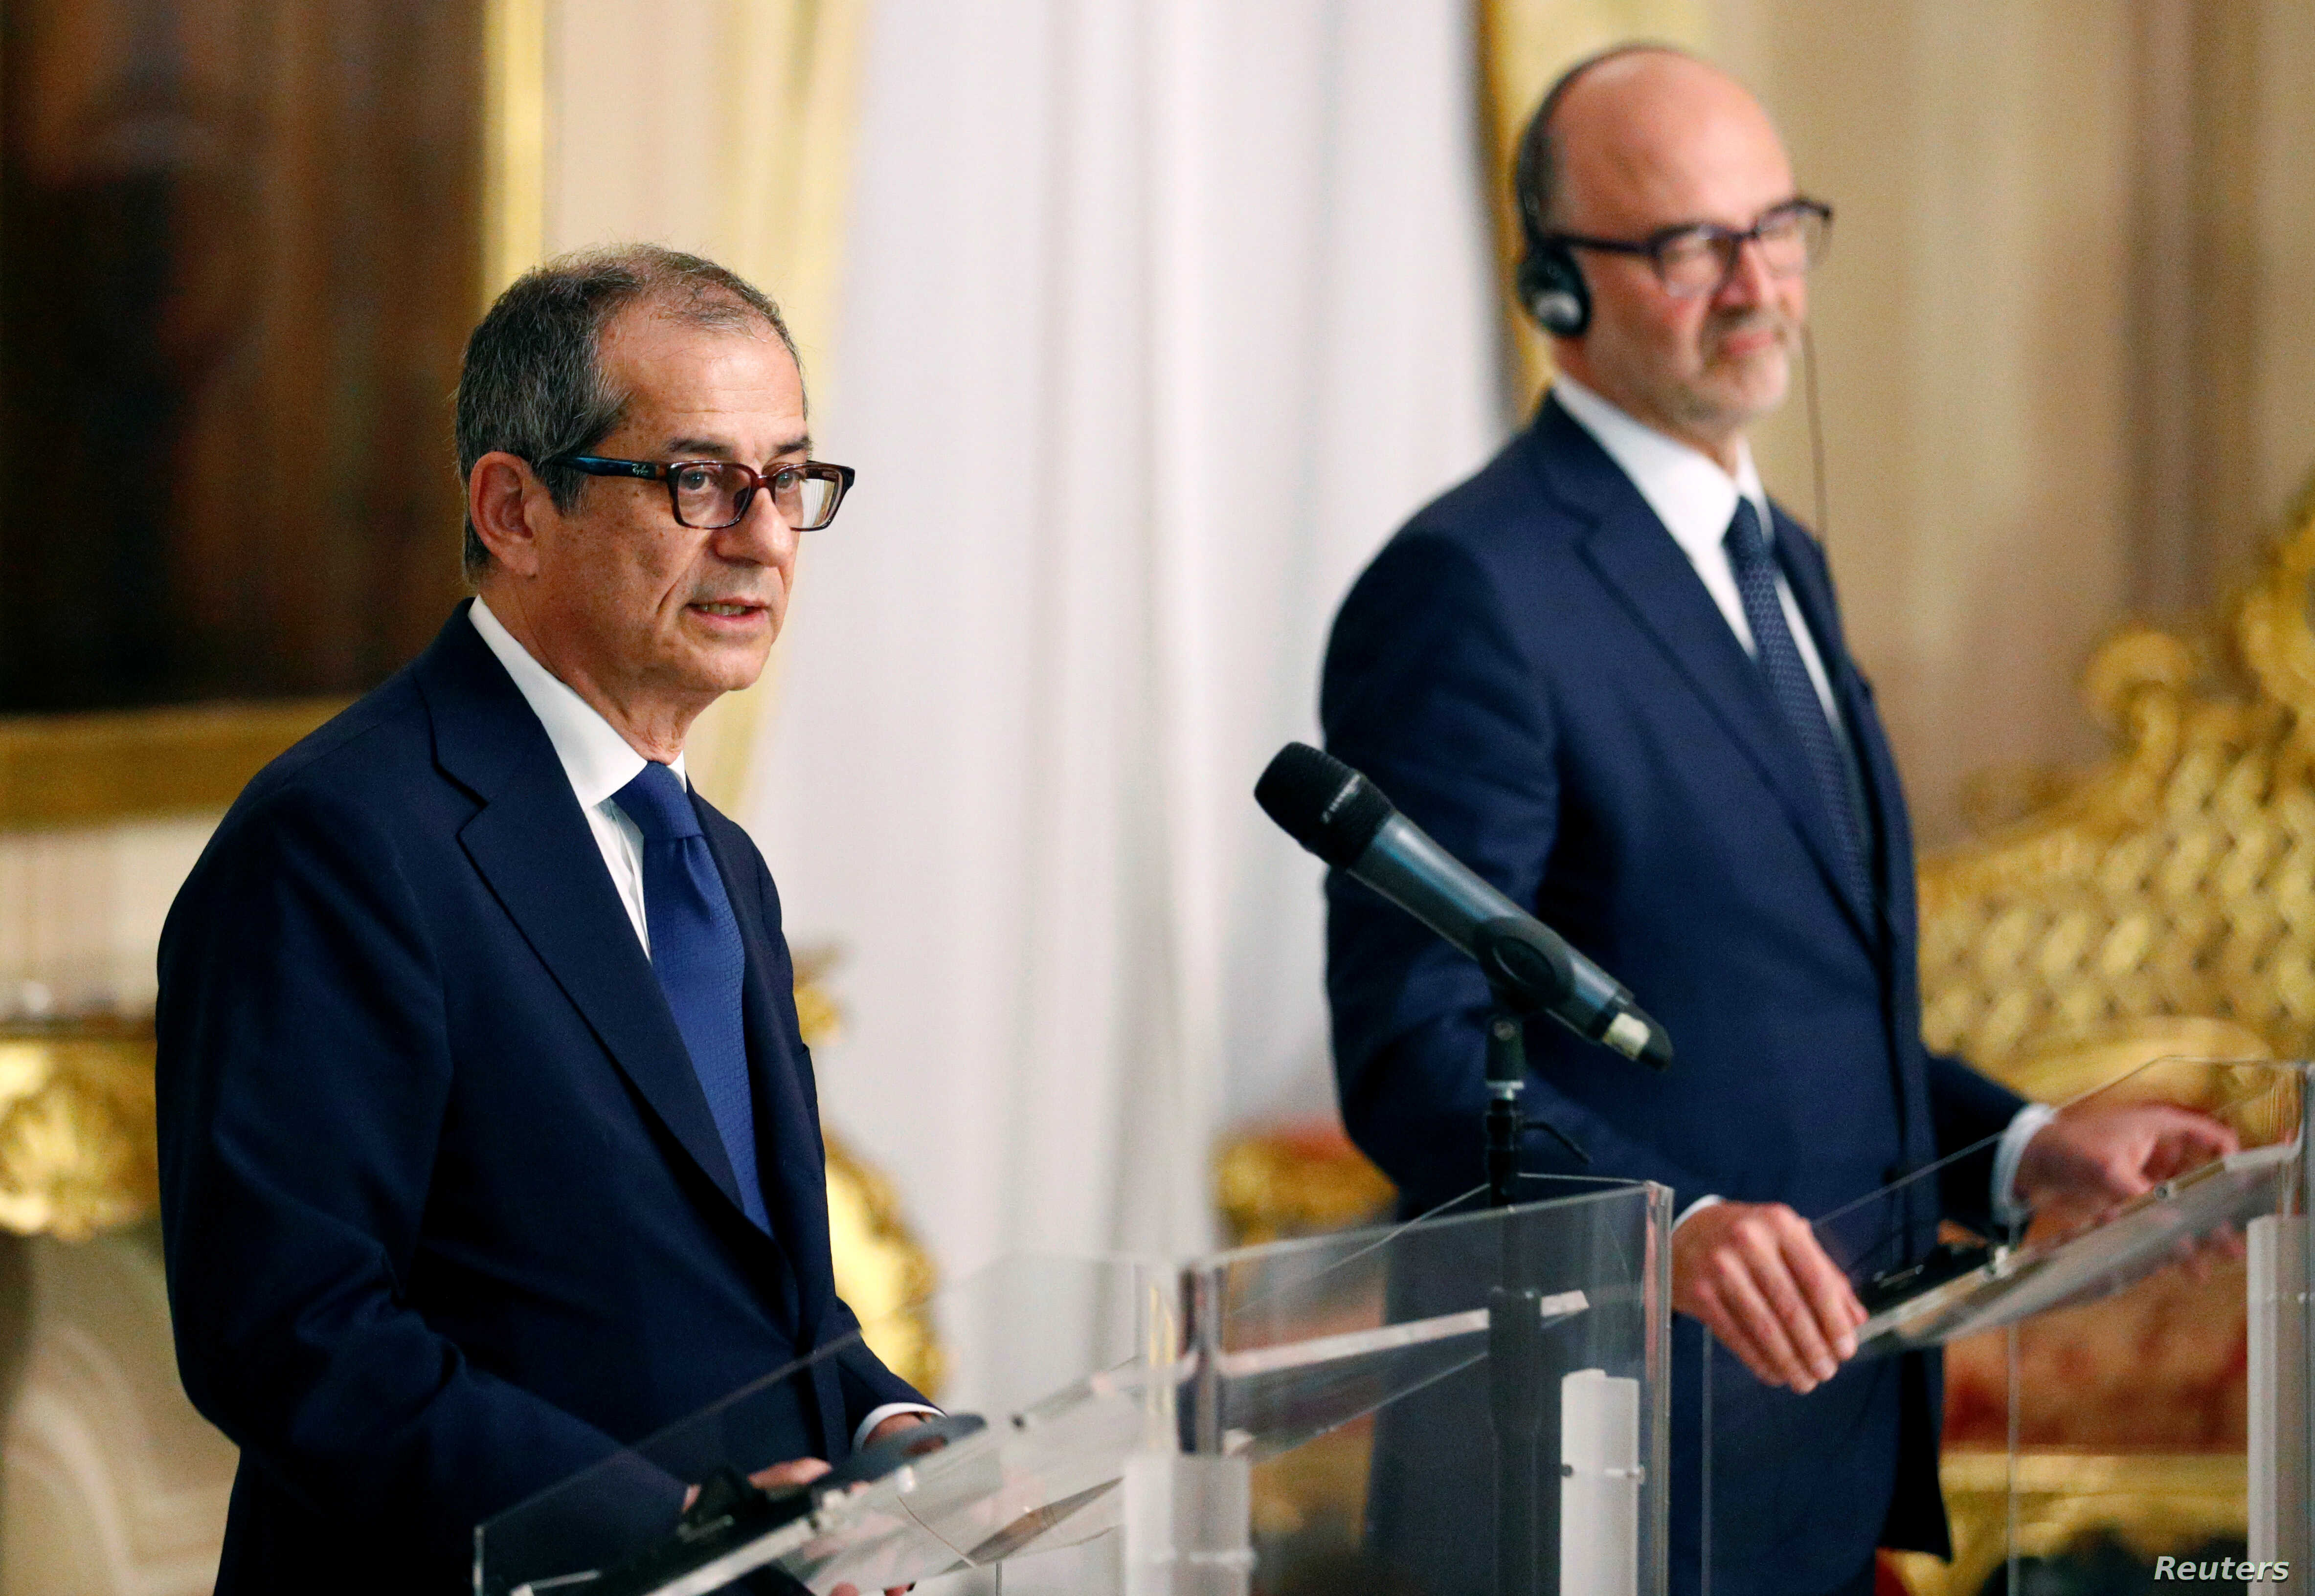 Italy's Economy Minister Giovanni Tria, left, holds a joint news conference with European Economic Commissioner Pierre Moscovici at the Treasury ministry in Rome, Italy Oct. 18, 2018.